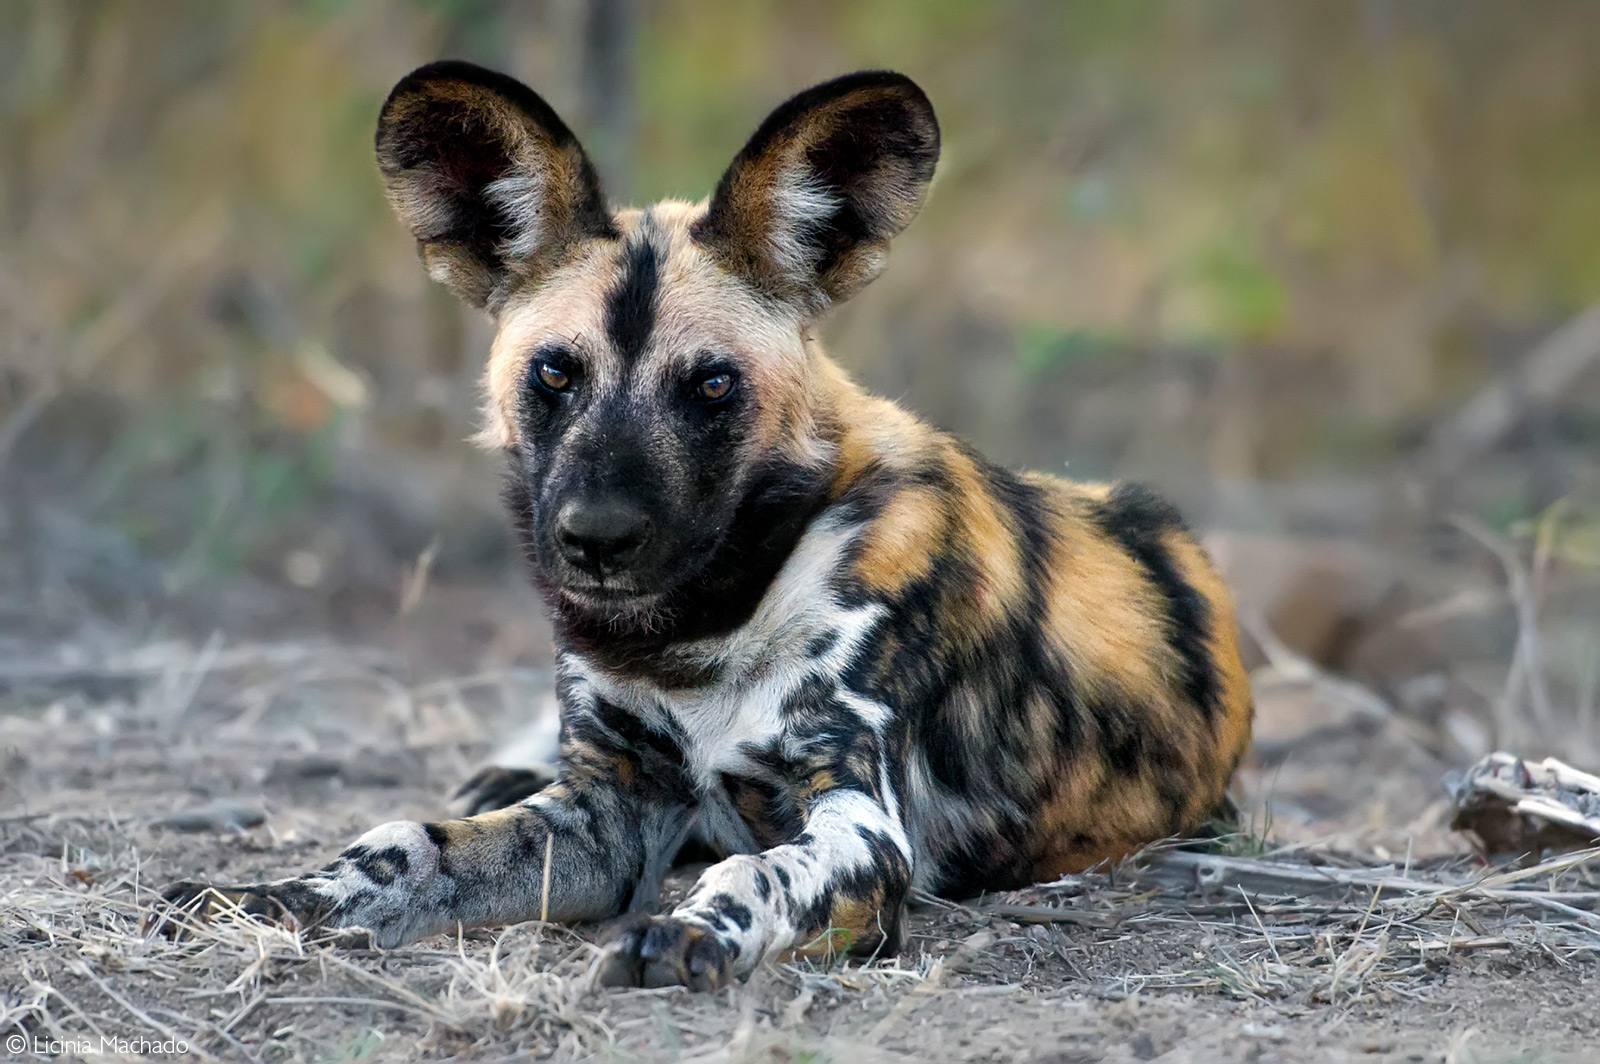 Portrait of a painted wolf (African wild dog). Kruger National Park, South Africa © Licinia Machado